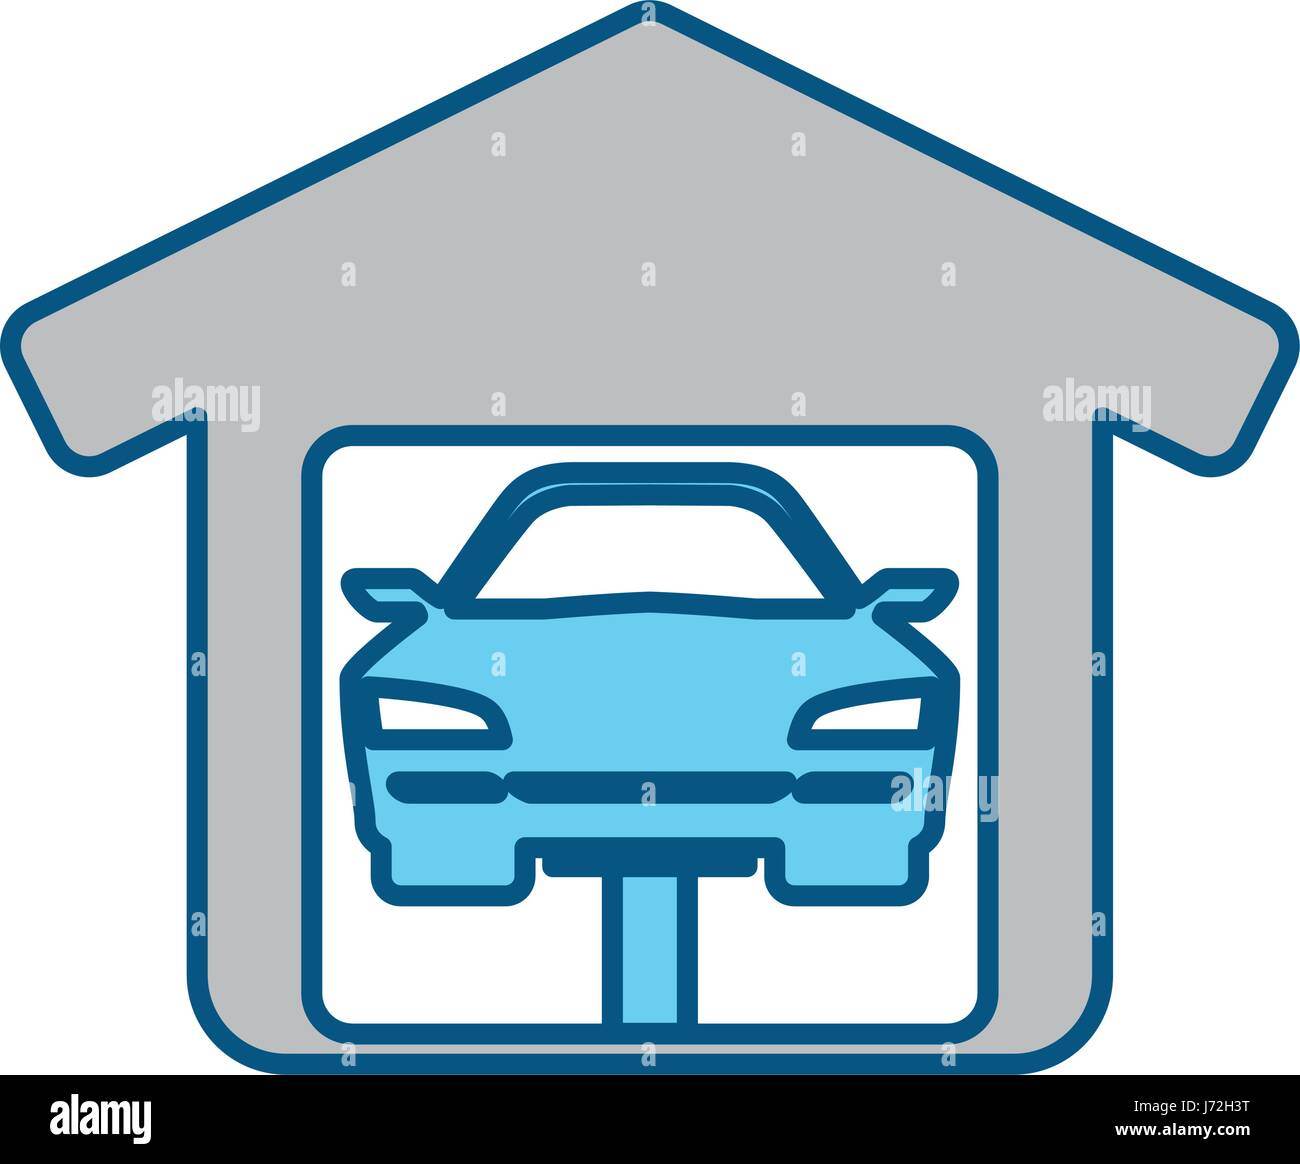 Garage Door Mechanic Stock Vector Art Illustration Vector Image